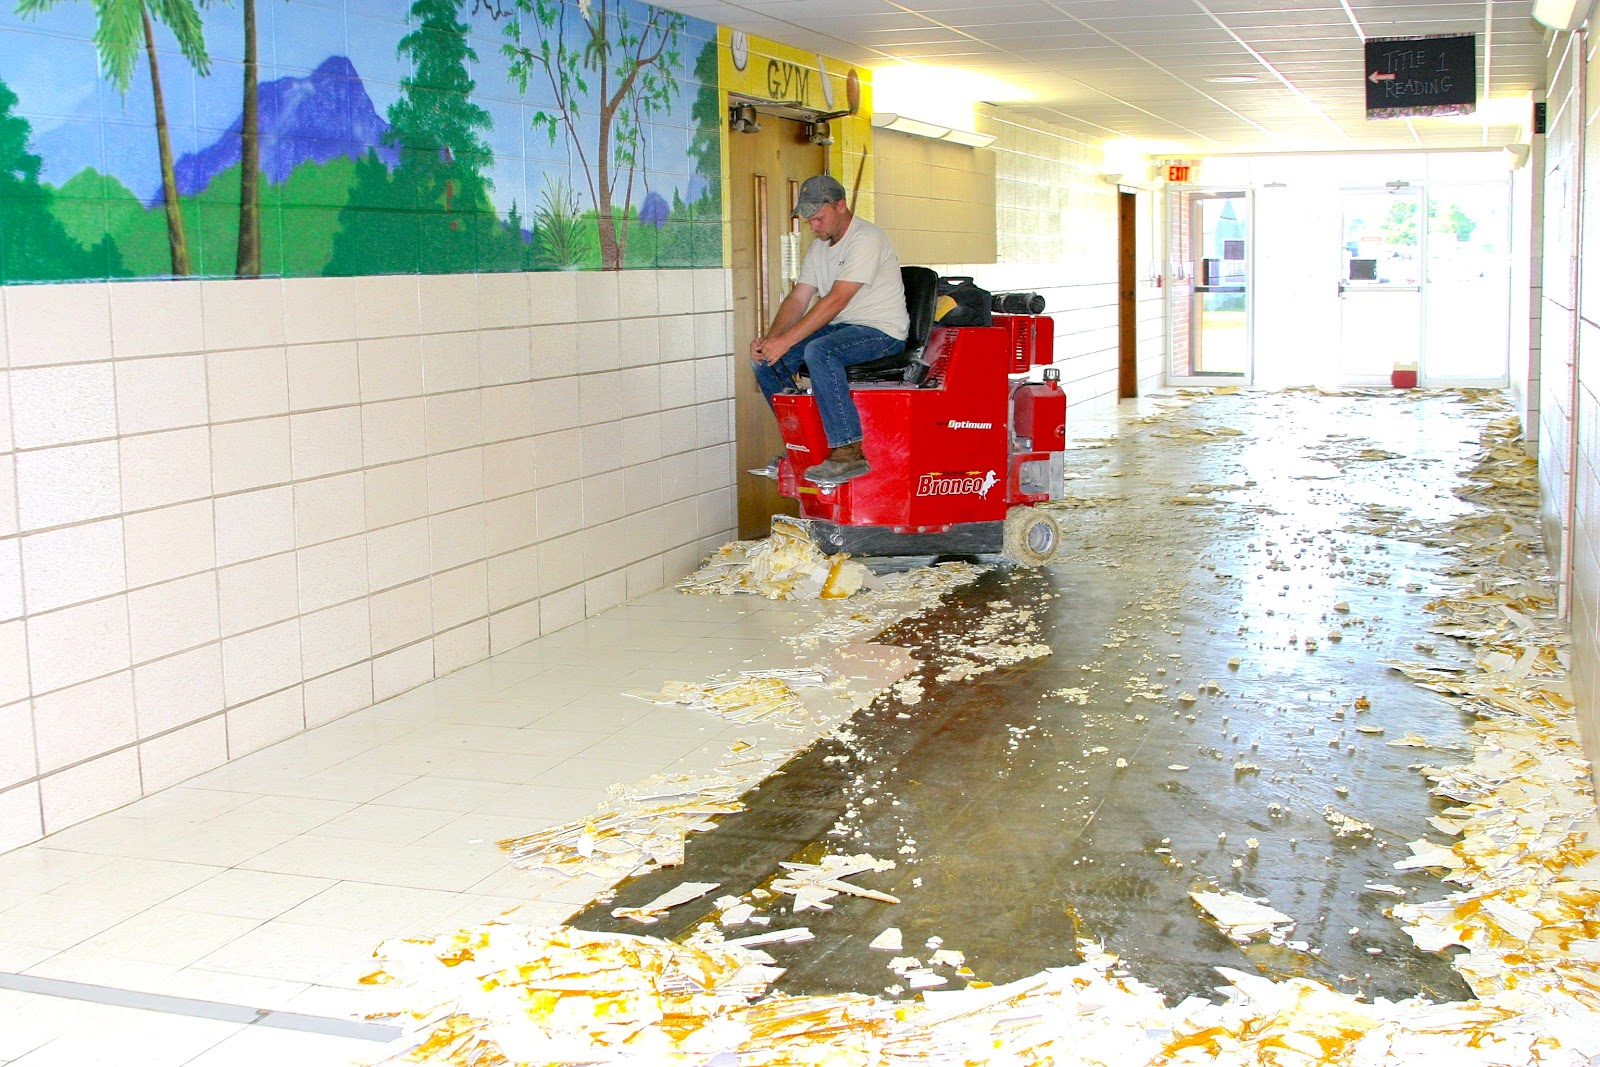 Tile In School : Dallas county r i schools news new tile for south wing of